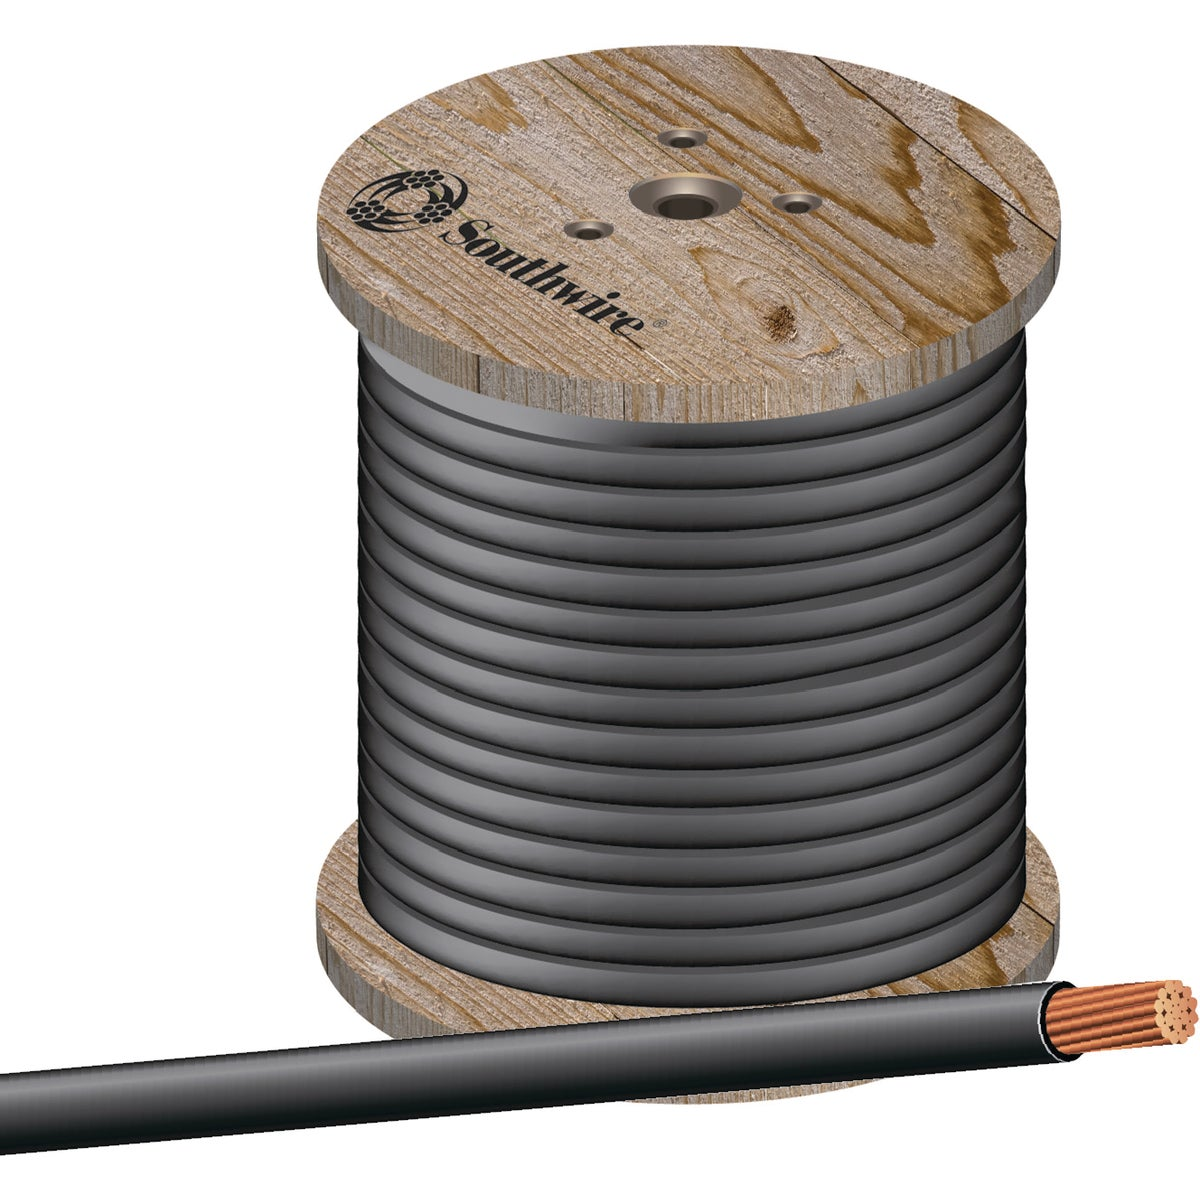 500' #4 USE ALUM CABLE - 27280704 by Southwire Company